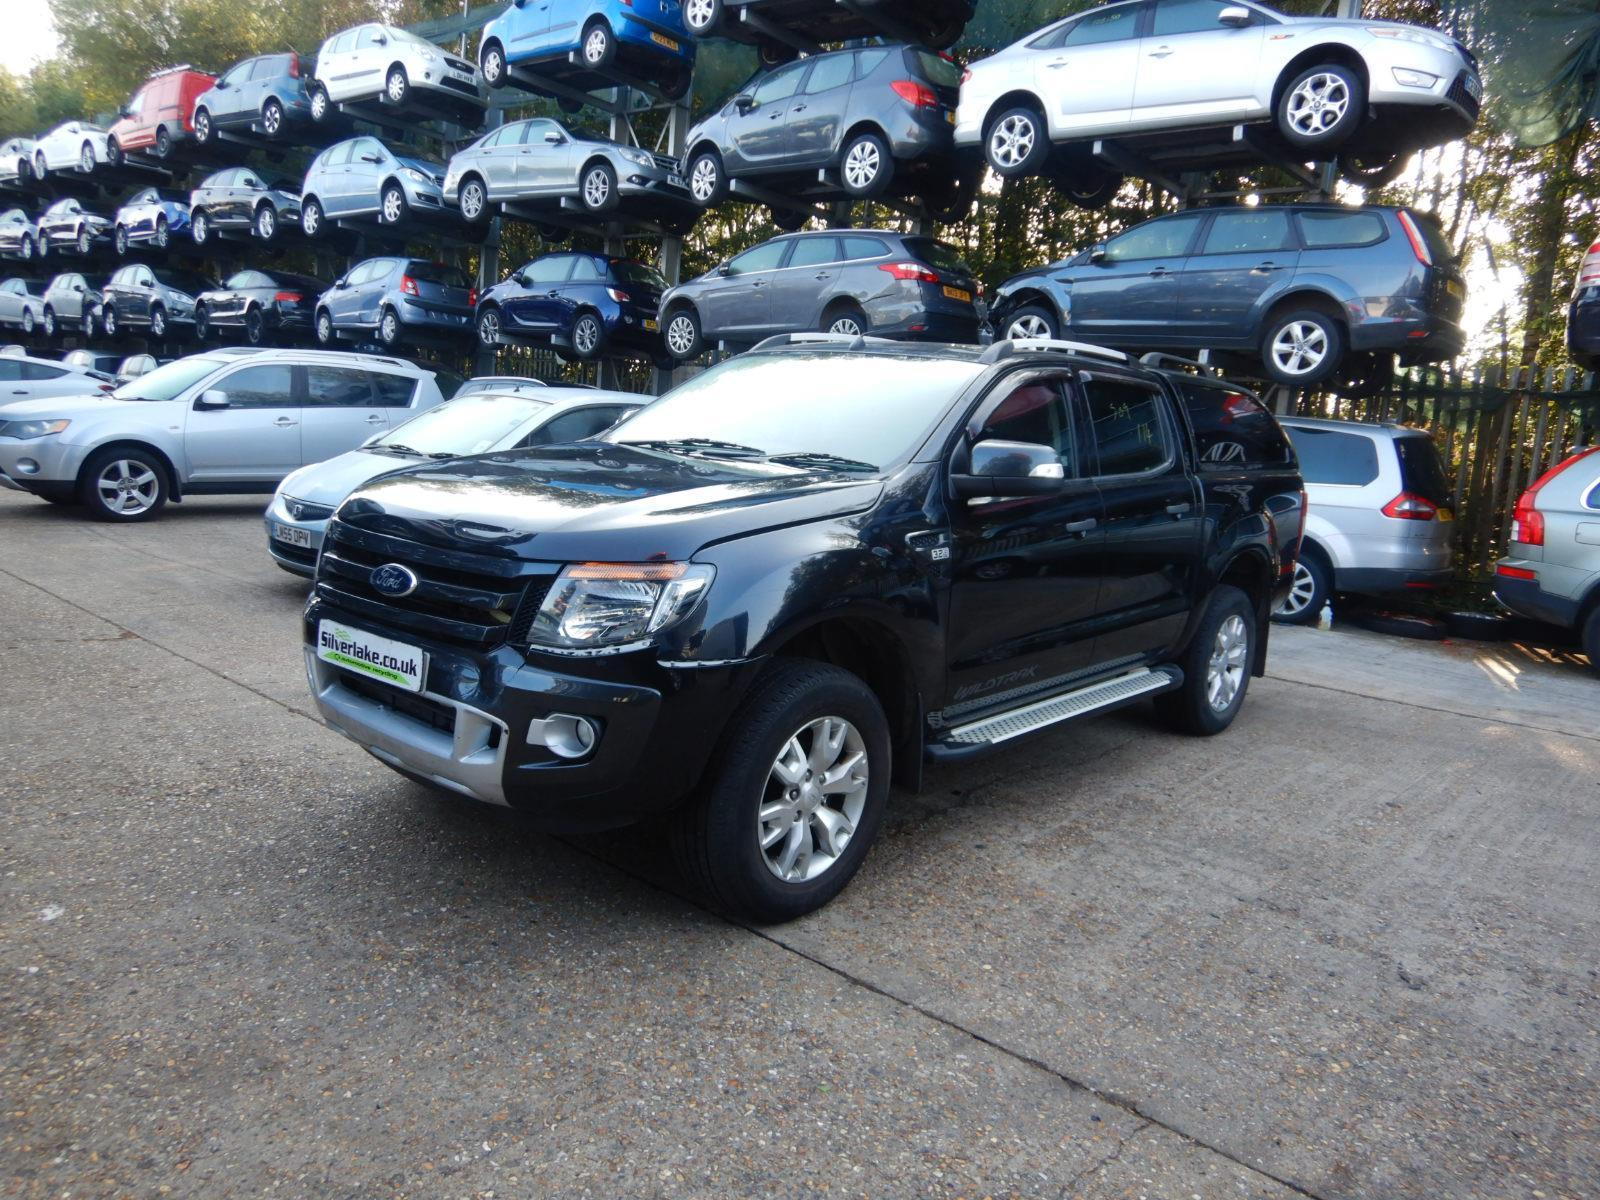 2014 Ford Ranger D/Cab Wildtrack 4WD 3196cc Diesel Automatic 6 Speed Pick-Up